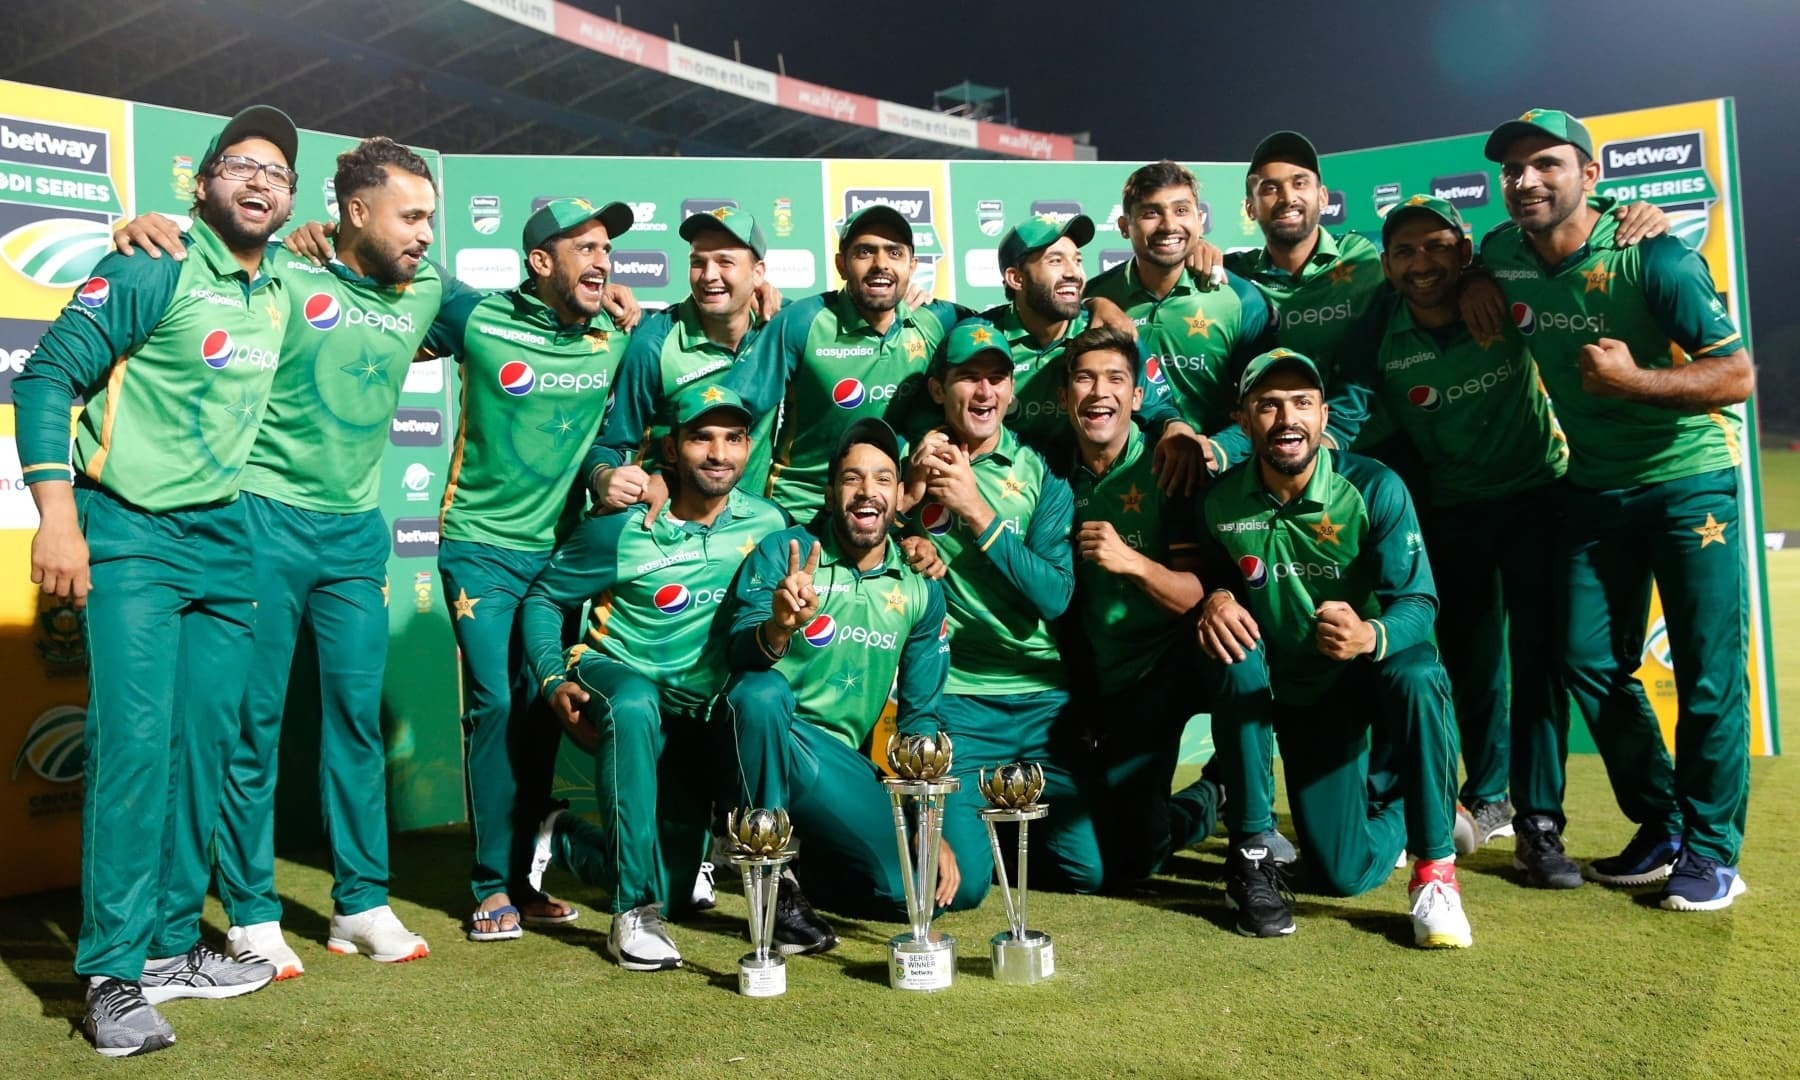 India to issue visas to Pakistani cricket team for ICC T20 World Cup: report - Sport - DAWN.COM